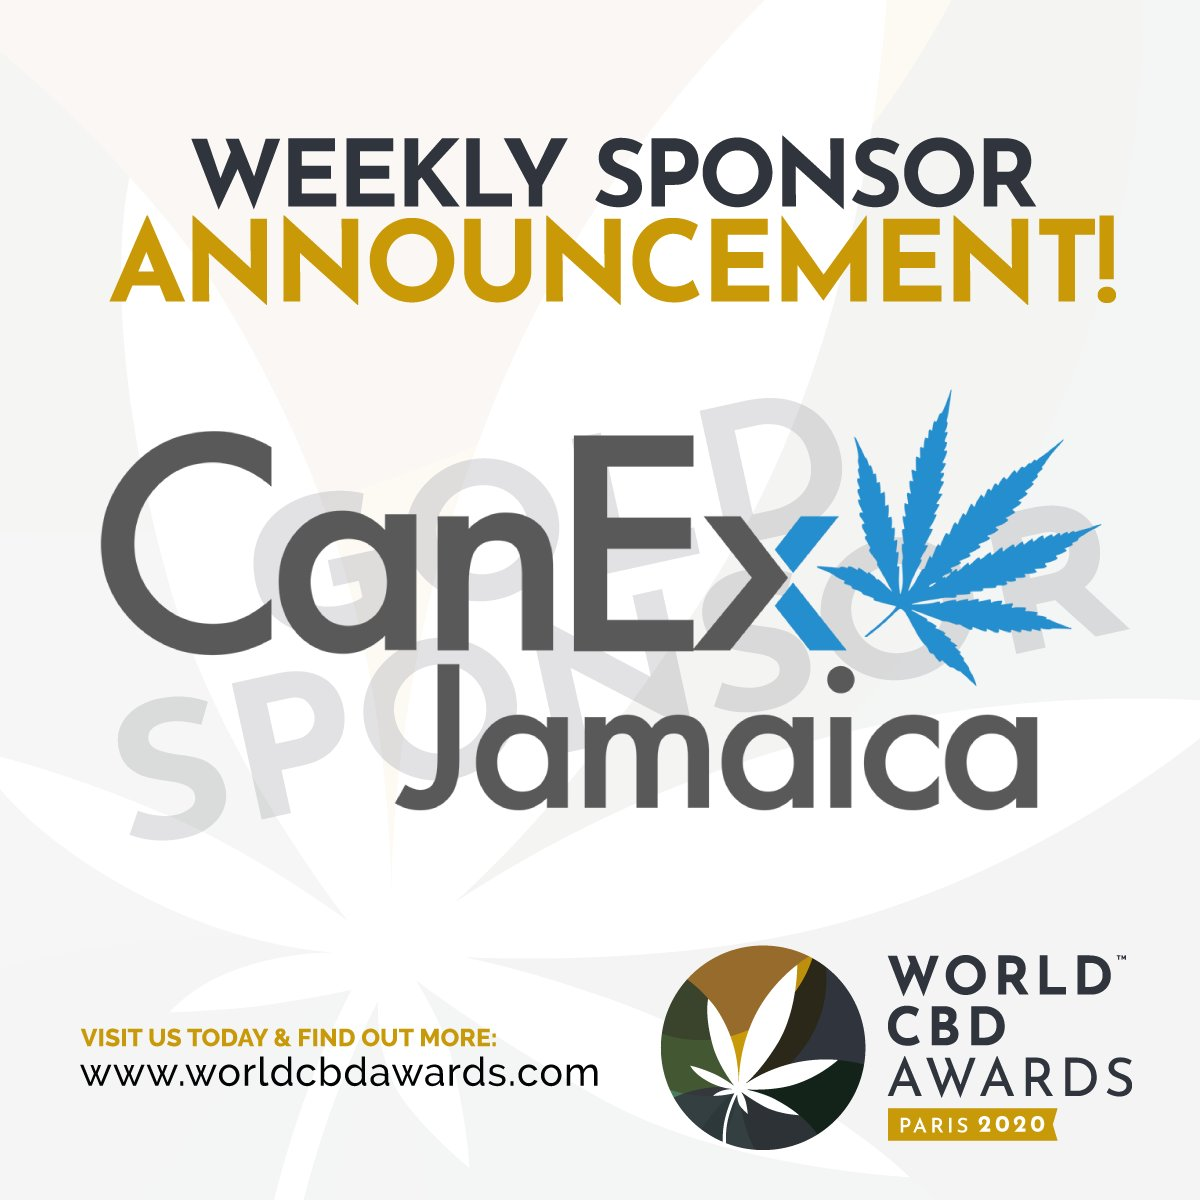 Showcasing Canex Jamaica...  Canex Jamaica host an amazing Expo every year in Jamaica, with many companies attending all over the world!  See their fantastic Expo and more over on their website:  https:// canexjamaica.com       #WorldCBDAwards #CanexJamaica #CBDEvents #CBD<br>http://pic.twitter.com/MUcAe7ArKX